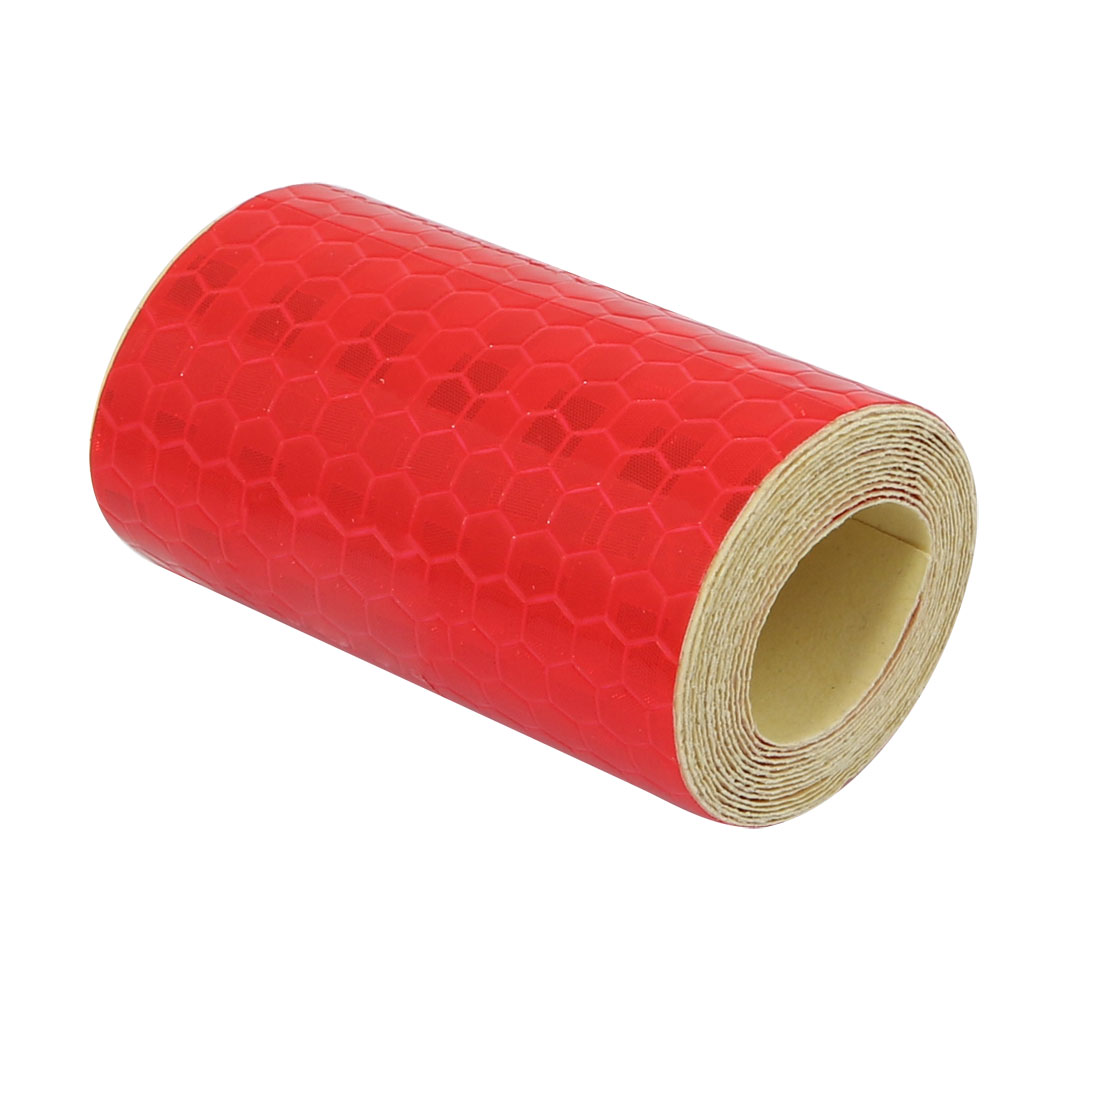 5cm Width 1M Length Honeycomb Single Sided Adhesive Reflective Warning Tape Red